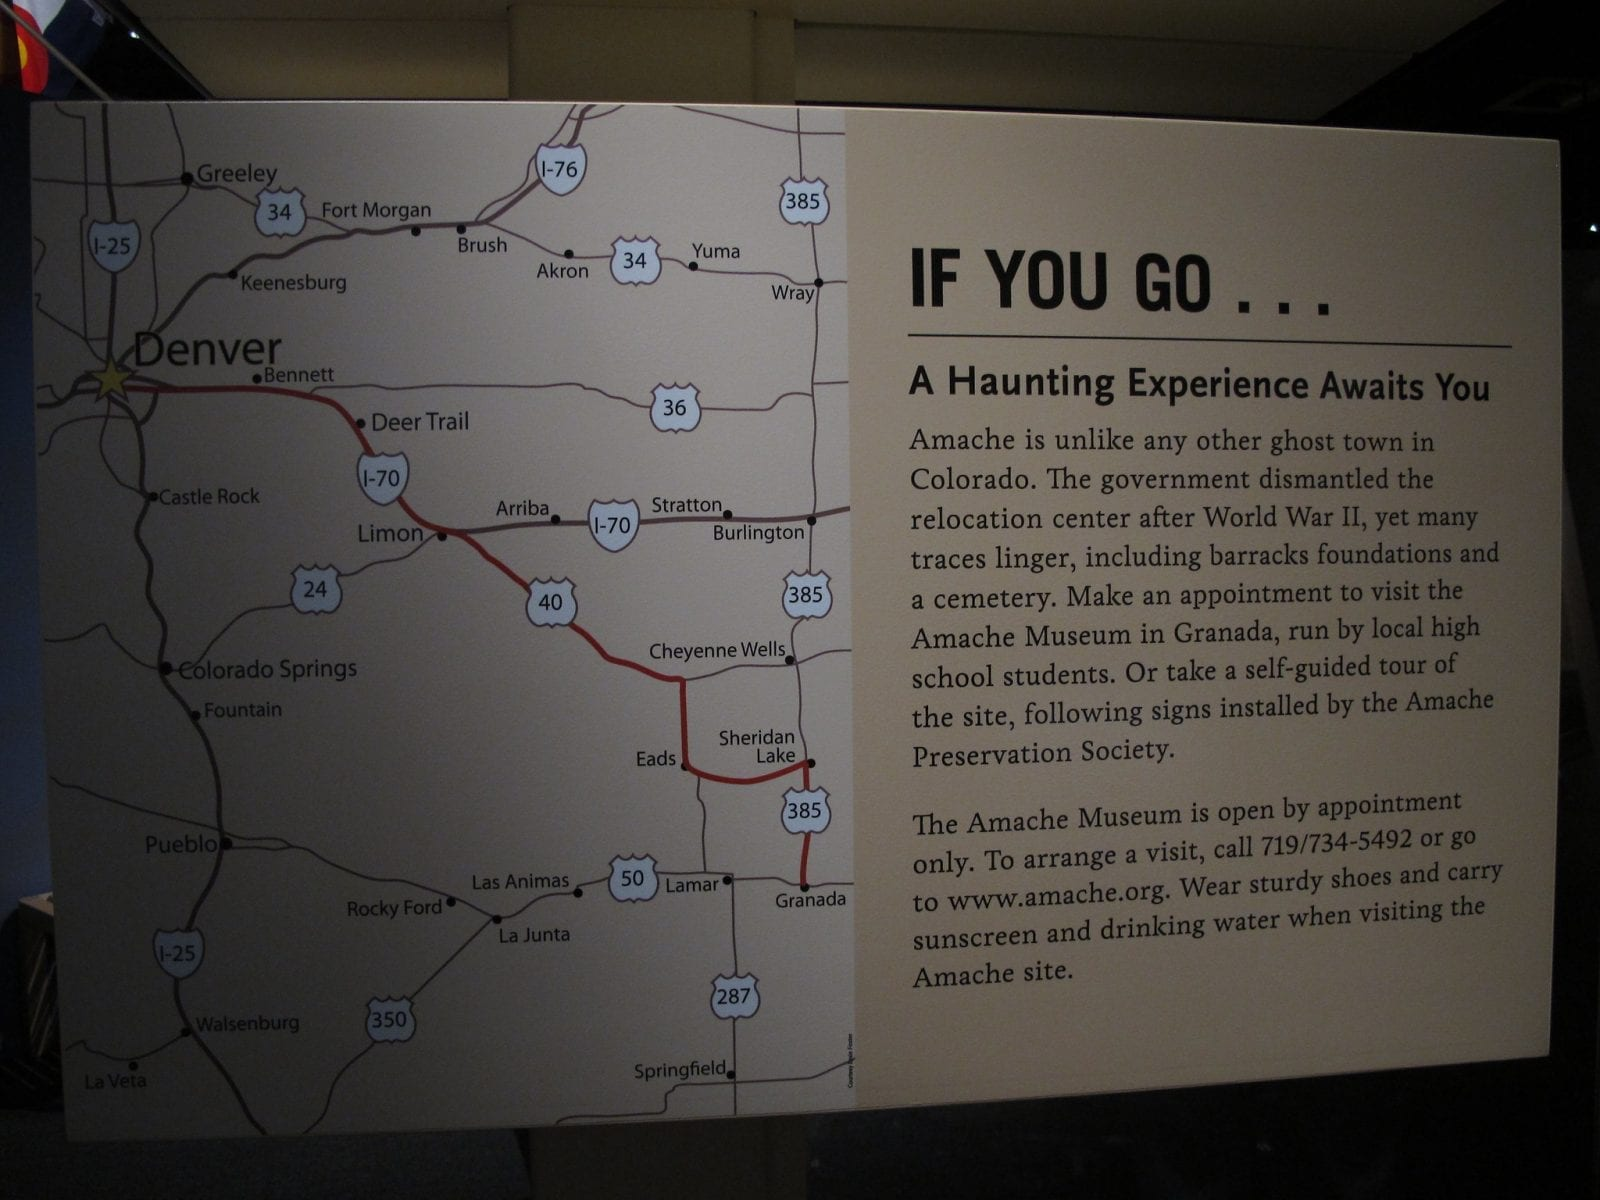 Image of a sign explaining how to get a tour at the Amache Museum in Colorado